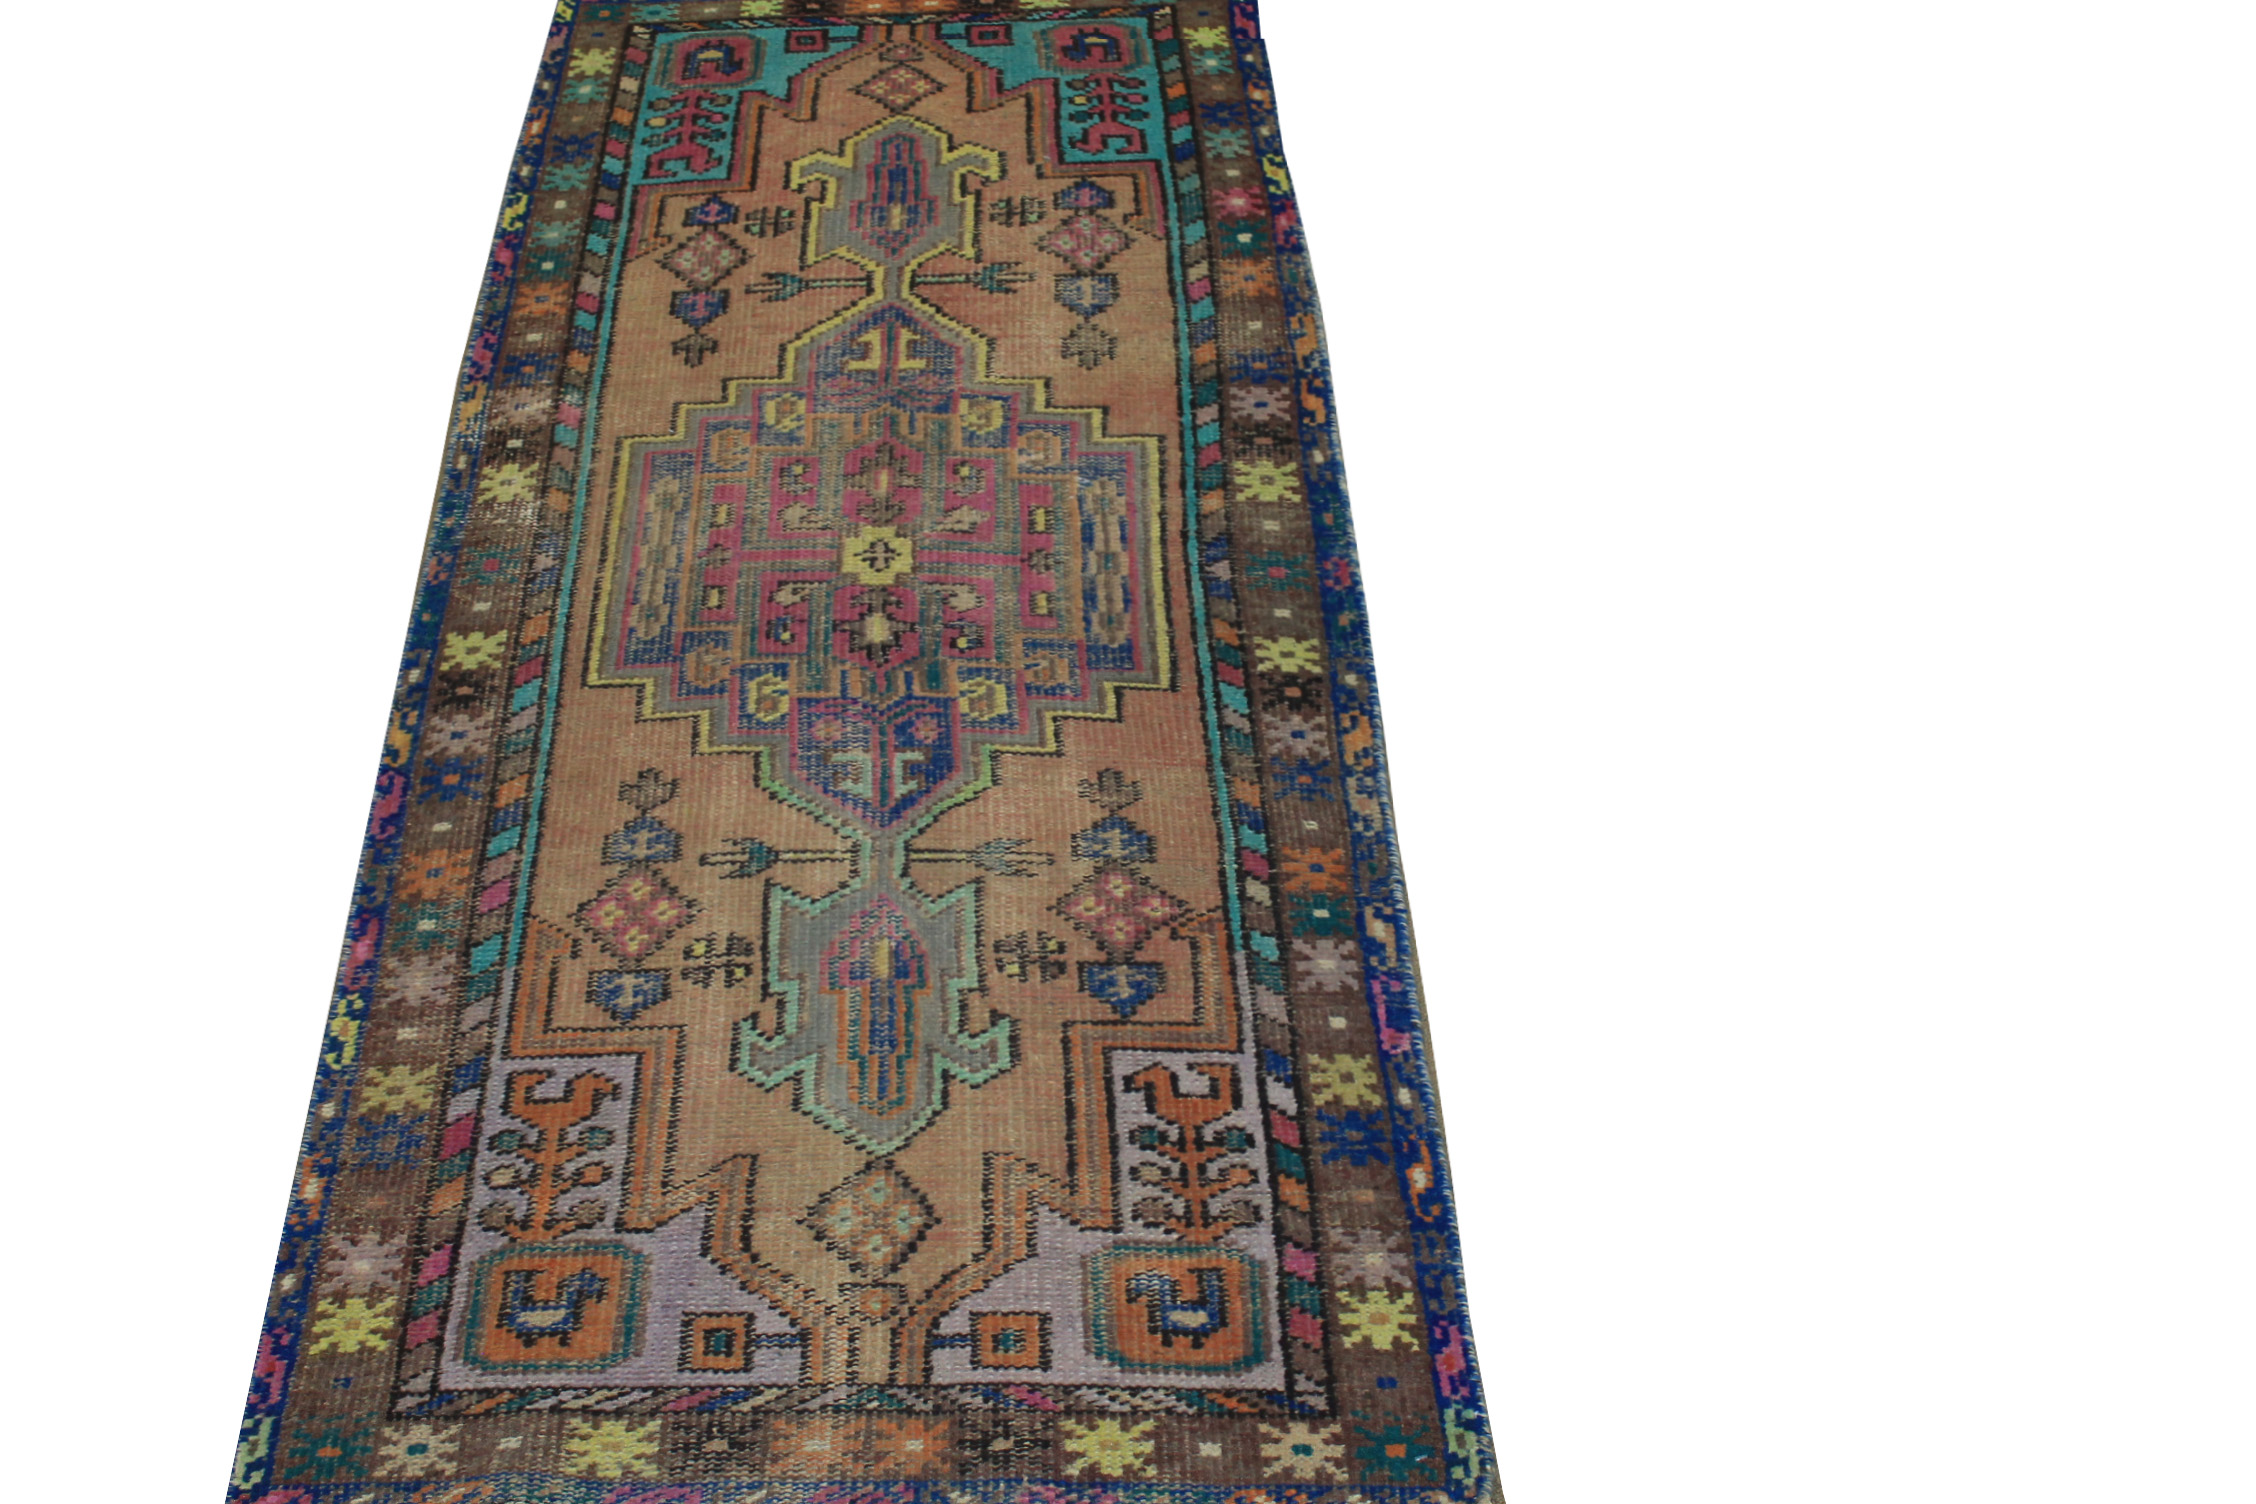 6 ft. Runner Vintage Hand Knotted Wool Area Rug - MR024443